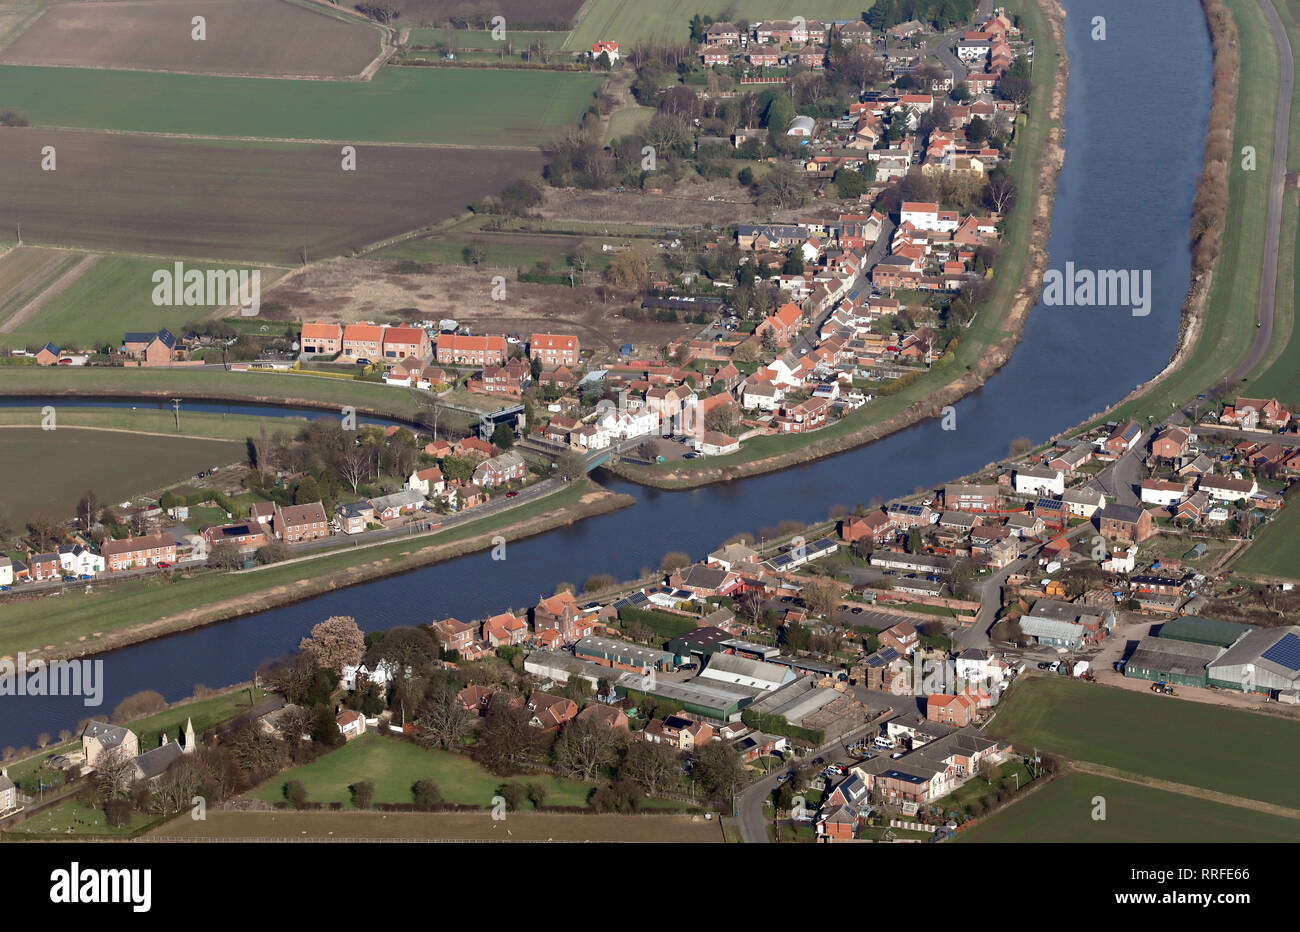 aerial view of East and West Stockwith villages, either side of the River Trent where it joins the River Idle, Nottinghamshire Stock Photo